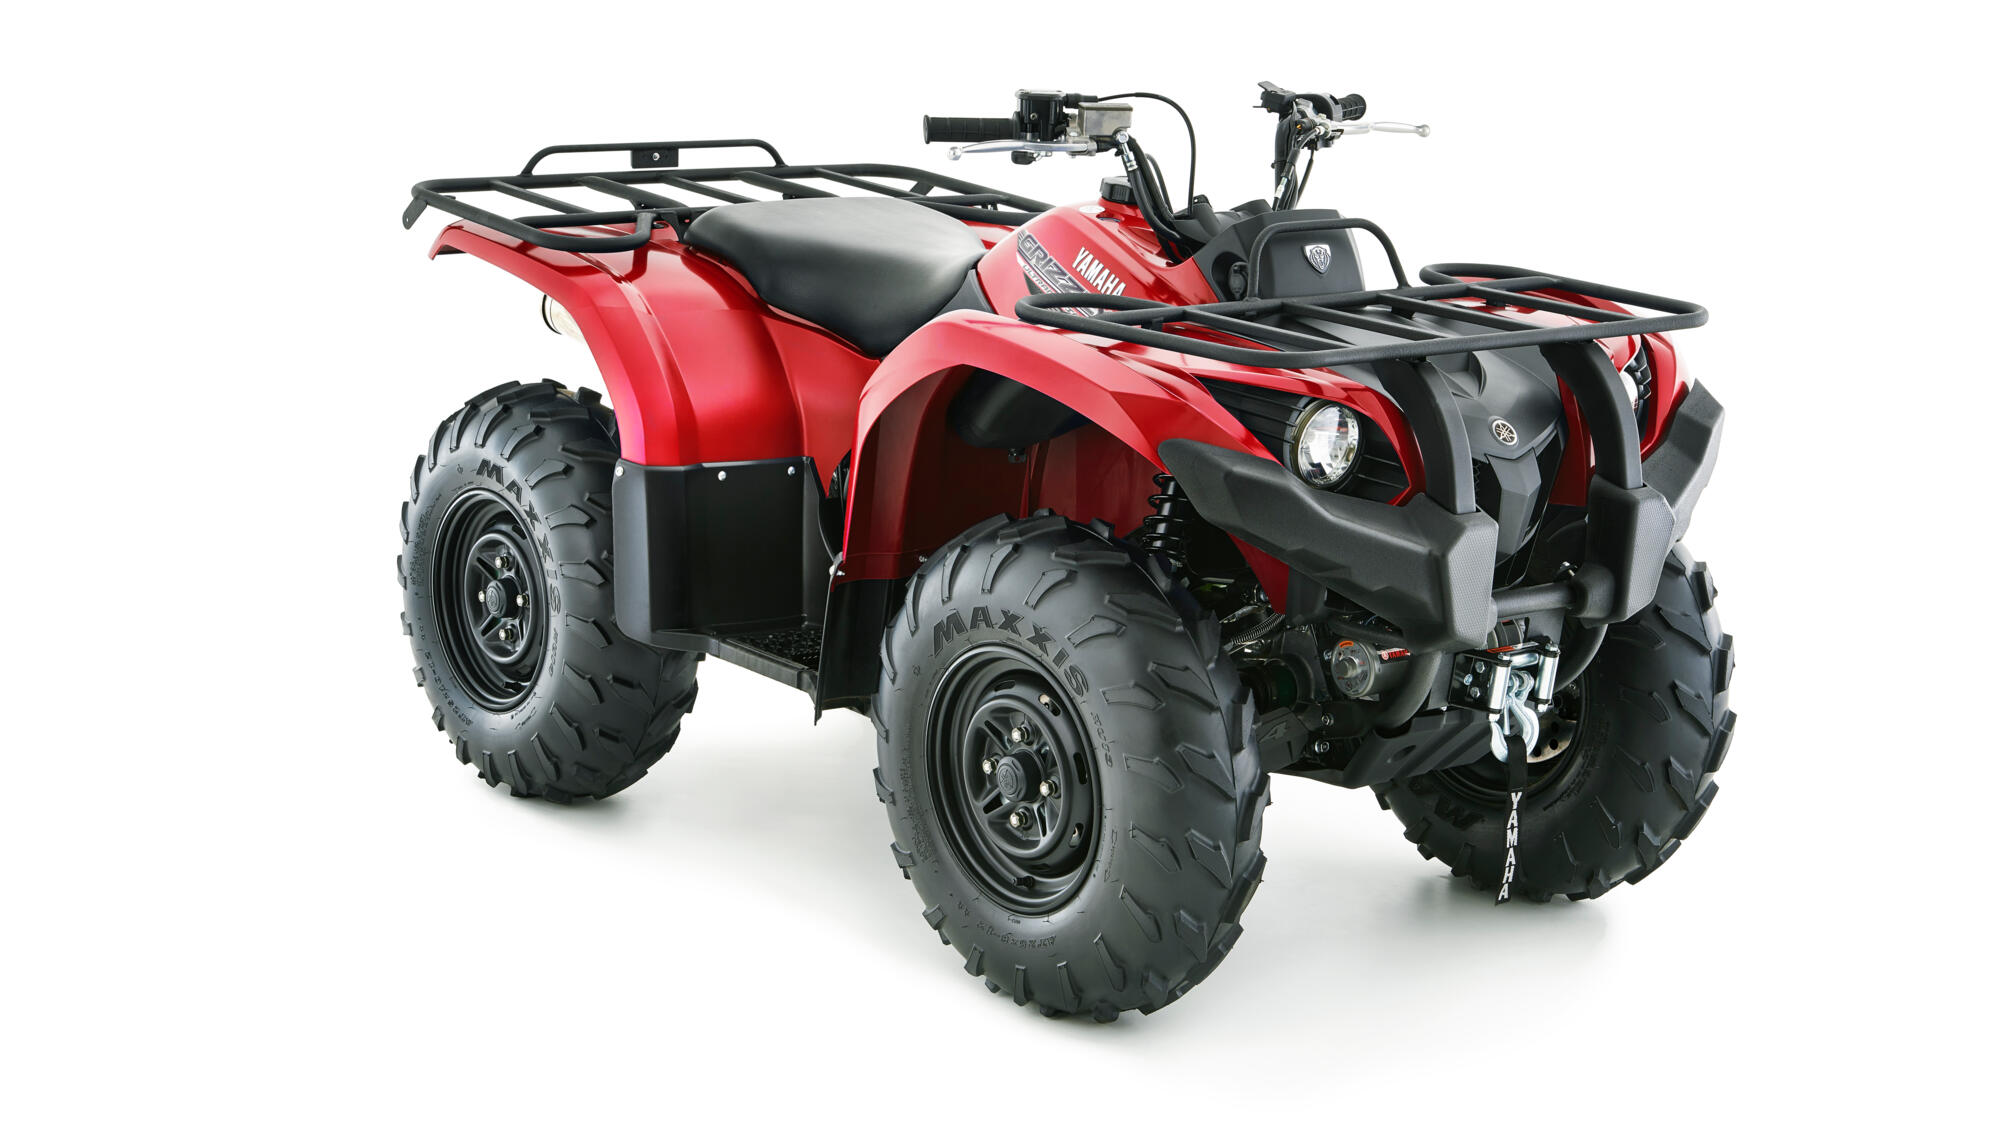 Grizzly 450 IRS